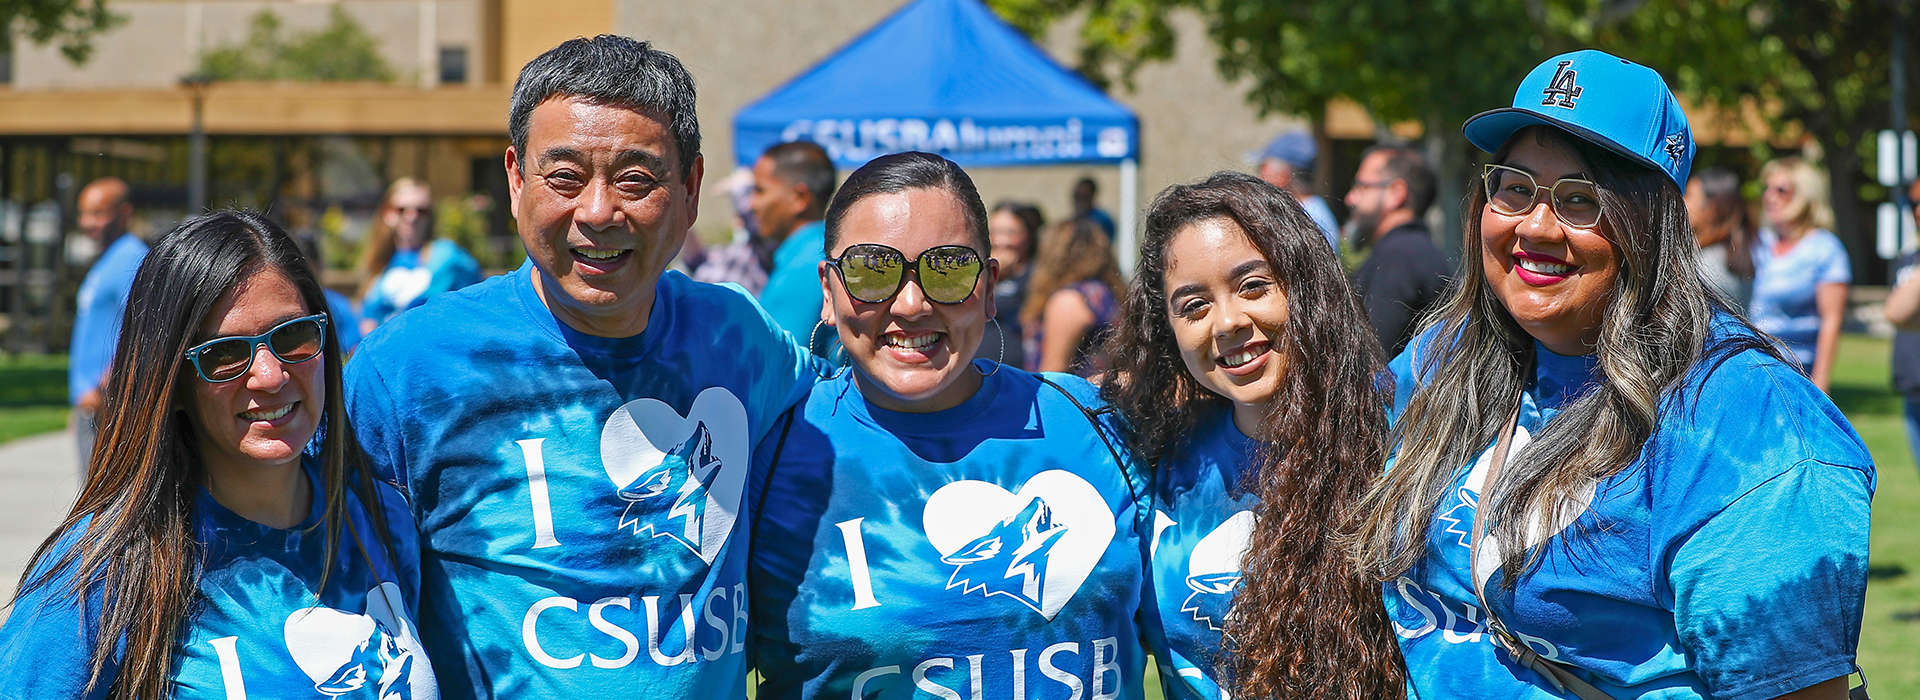 CSUSB closes out summer with Employee Appreciation Picnic